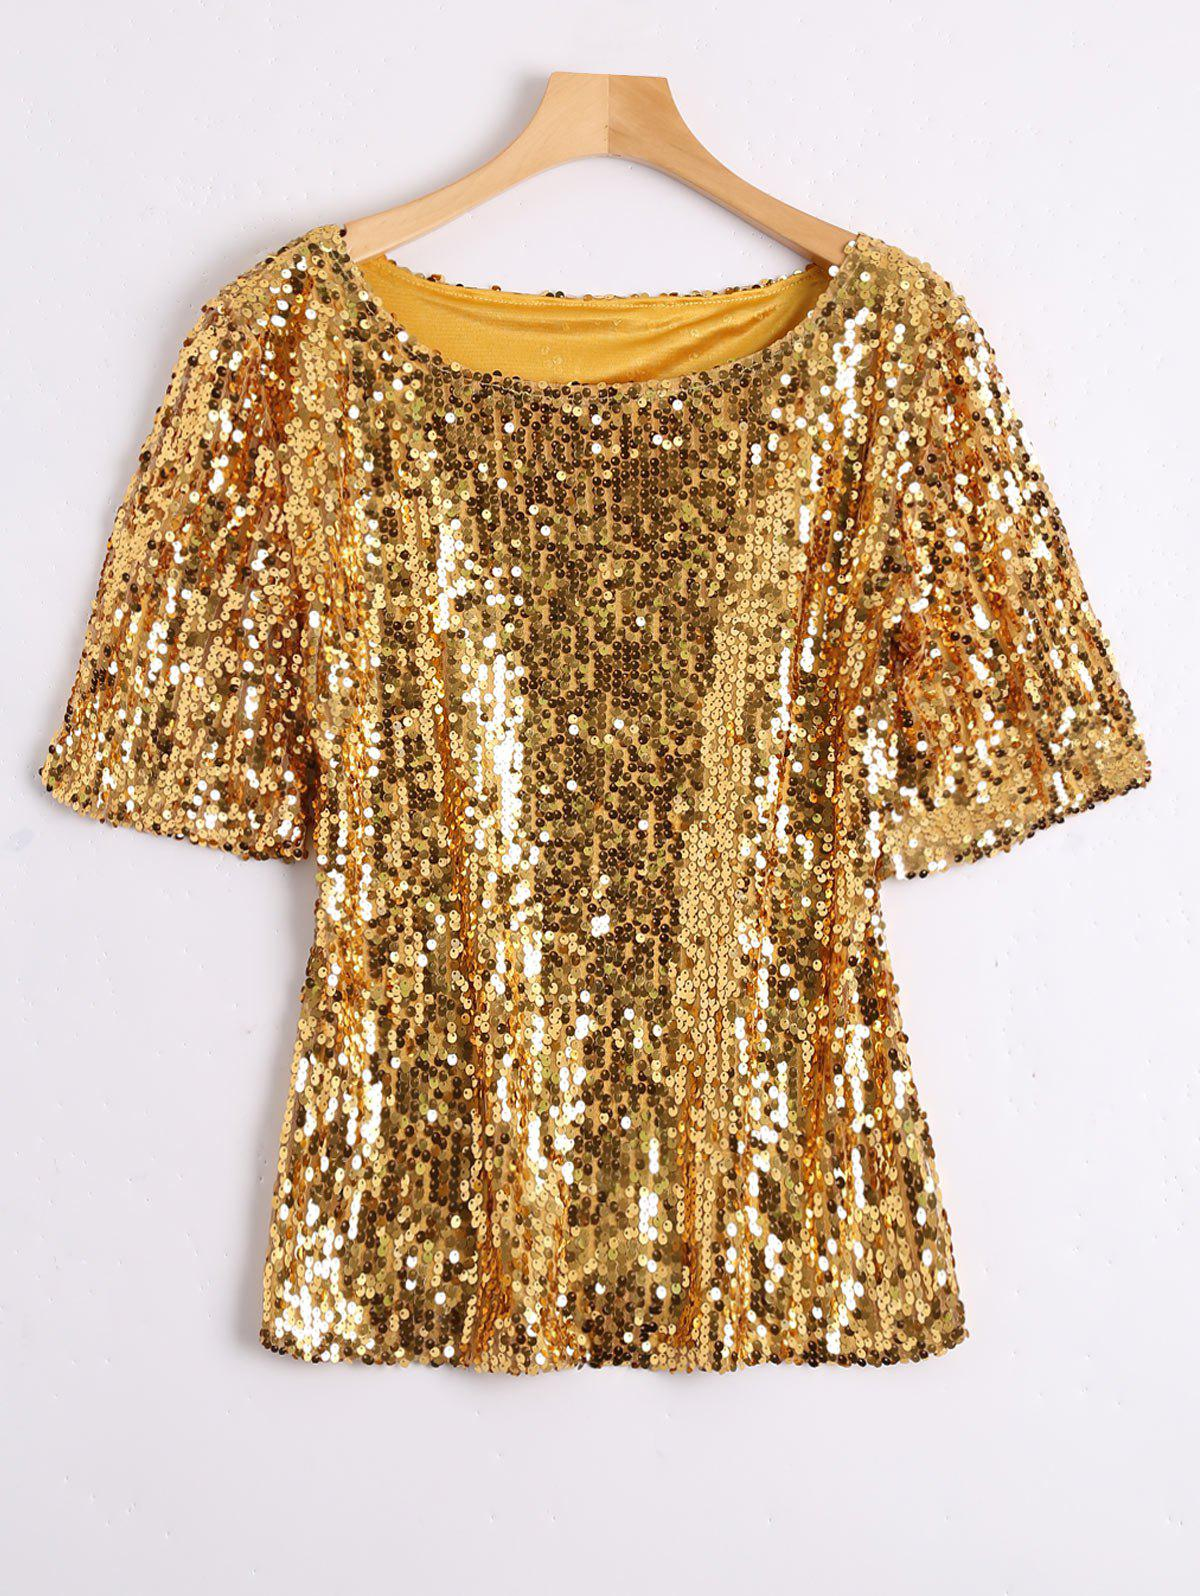 Plus Size Glitter Sequined T-shirtWOMEN<br><br>Size: 5XL; Color: GOLDEN; Material: Cotton Blends,Polyester; Shirt Length: Regular; Sleeve Length: Short; Collar: Scoop Neck; Style: Streetwear; Season: Spring,Summer; Embellishment: Sequins; Pattern Type: Solid; Weight: 0.3900kg; Package Contents: 1 x Tee;